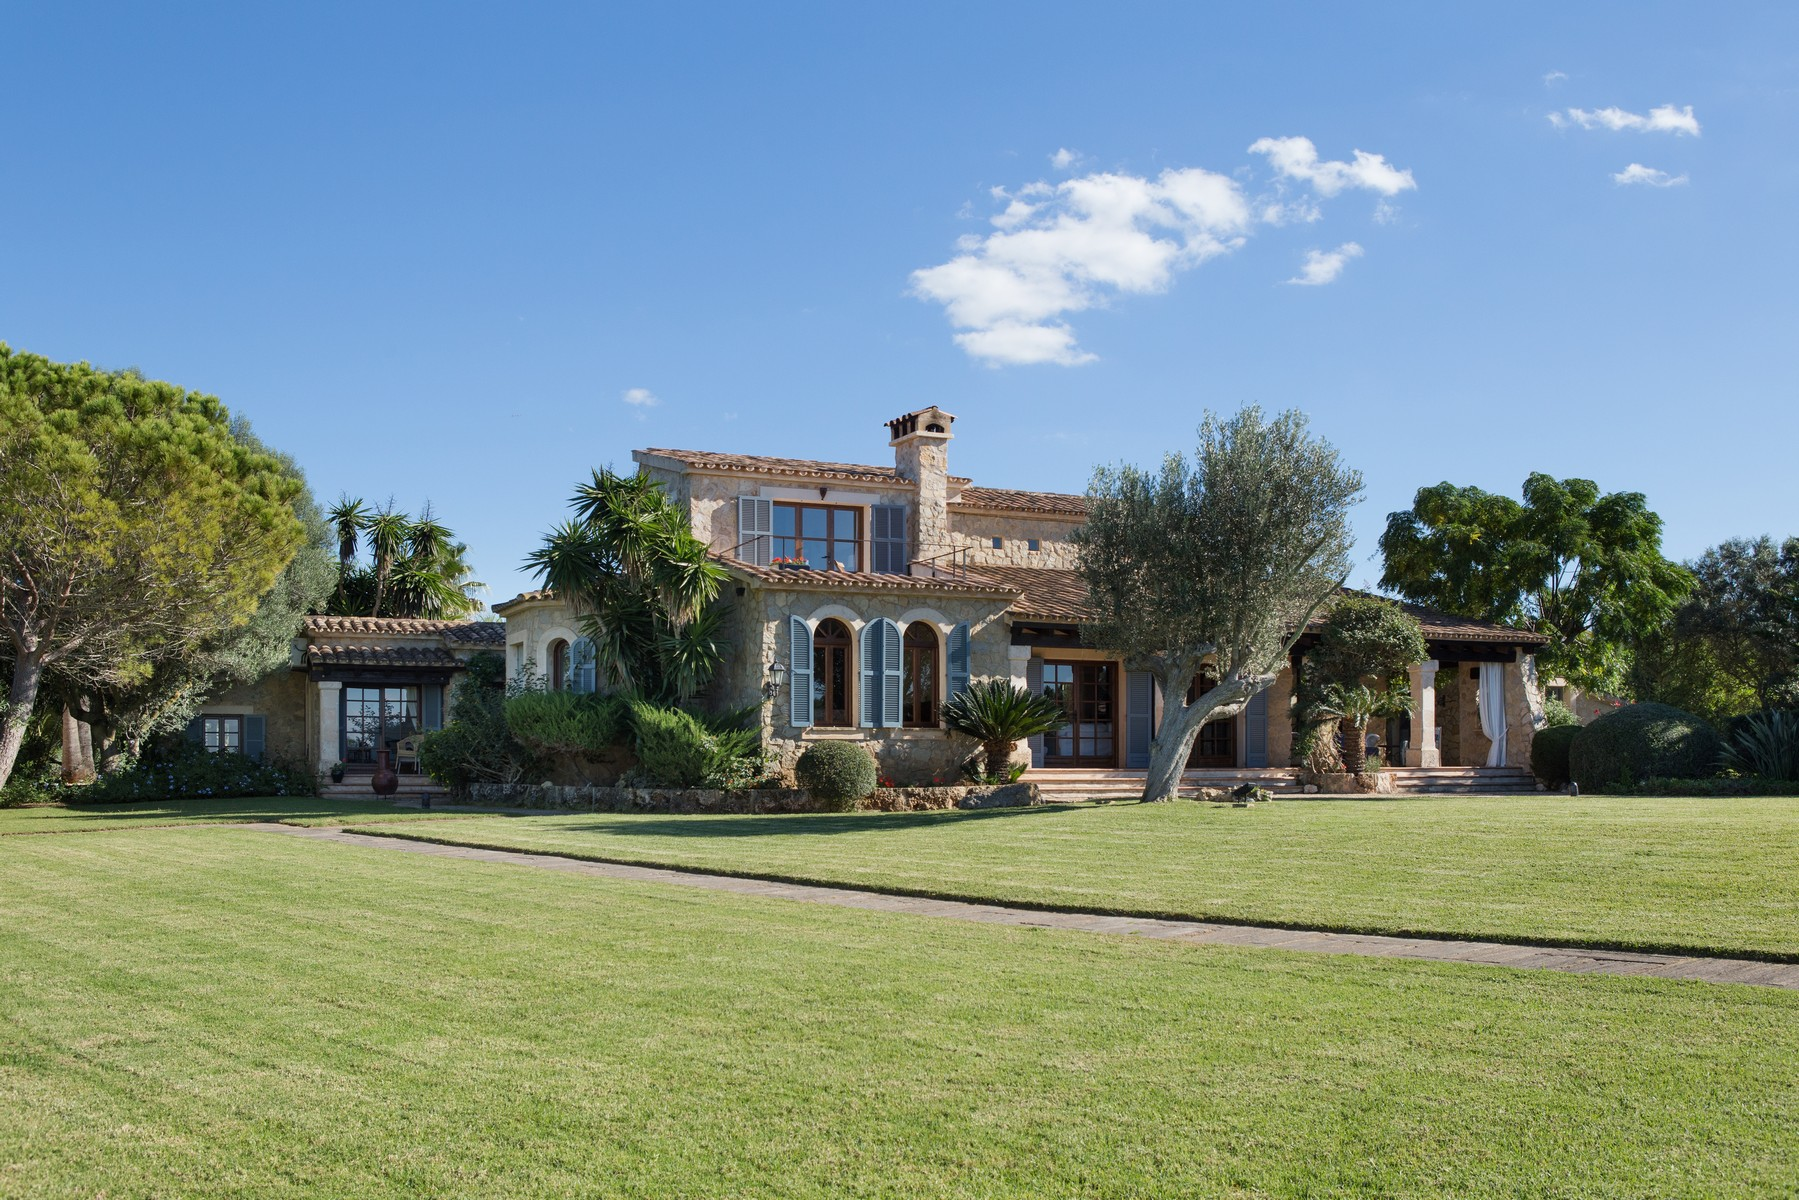 Maison unifamiliale pour l Vente à Majorcan country estate with stunning views Manacor, Majorque, 07529 Espagne